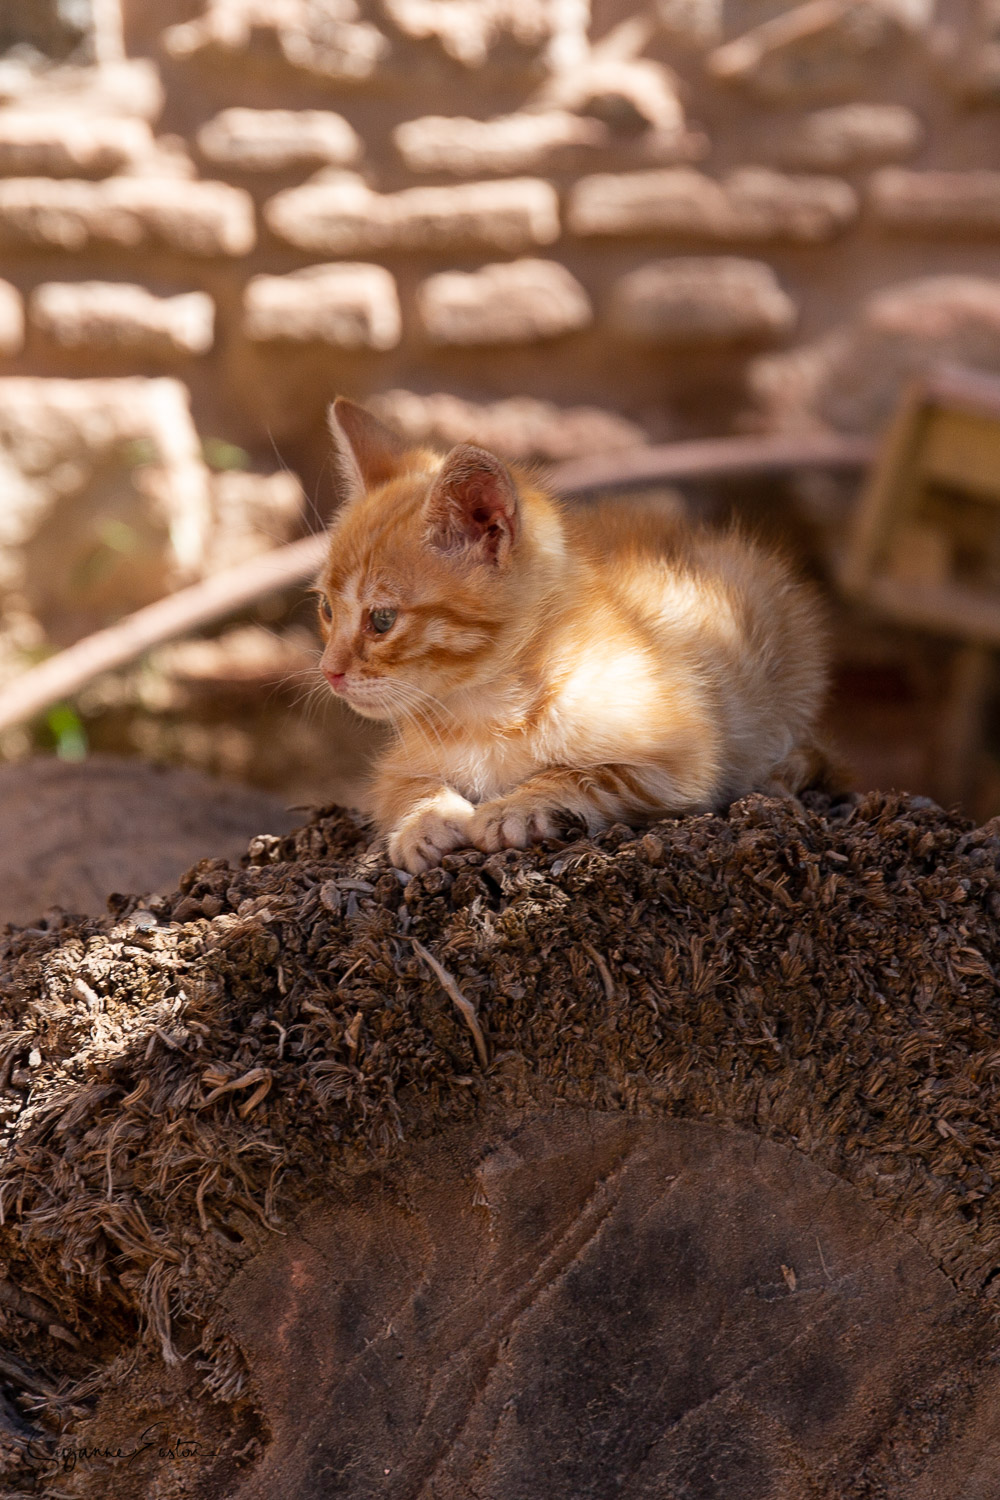 This tiny ginger kitten was not as alone as he looked.  Mum was nearby snoozing under a tree in the mosque gardens